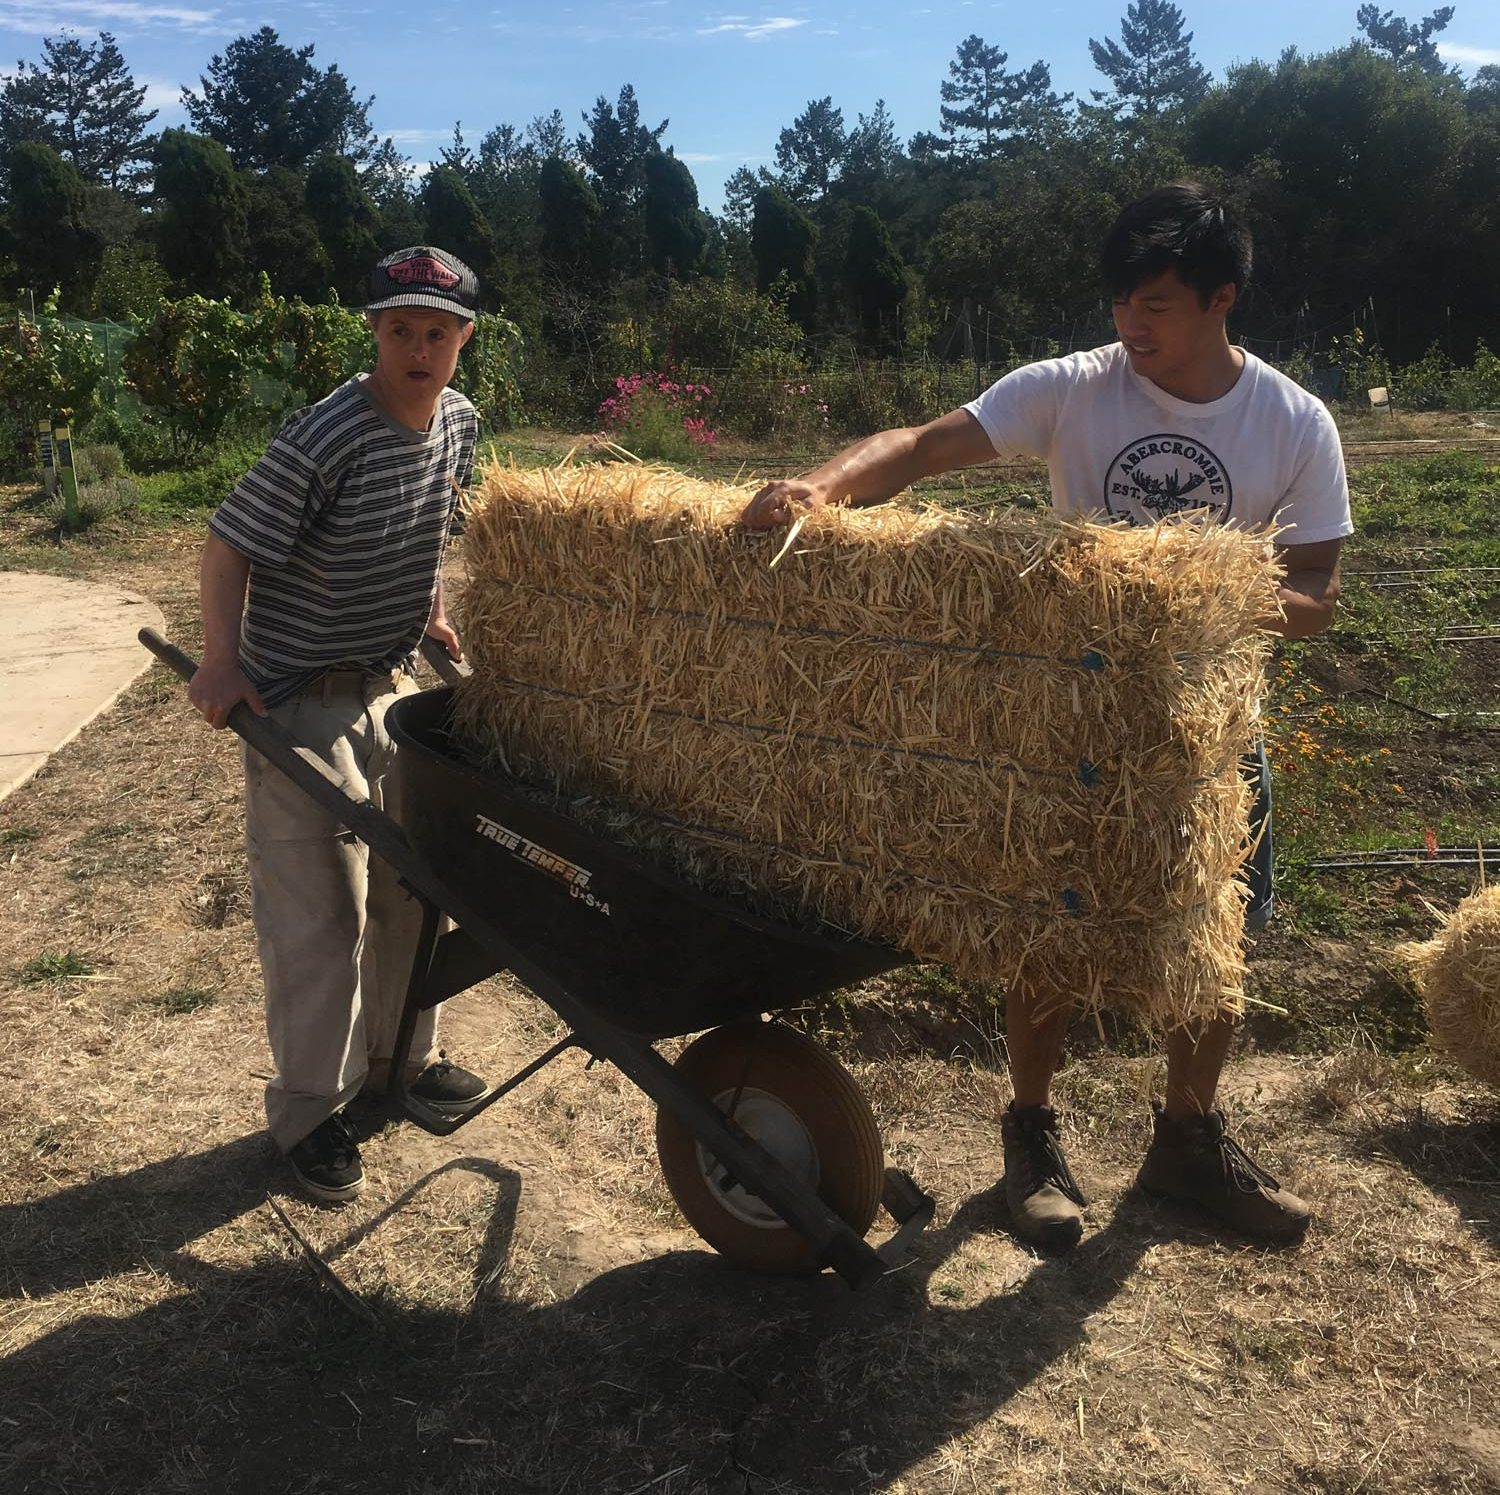 two men are moving a large hay bail with a wheelbarrow